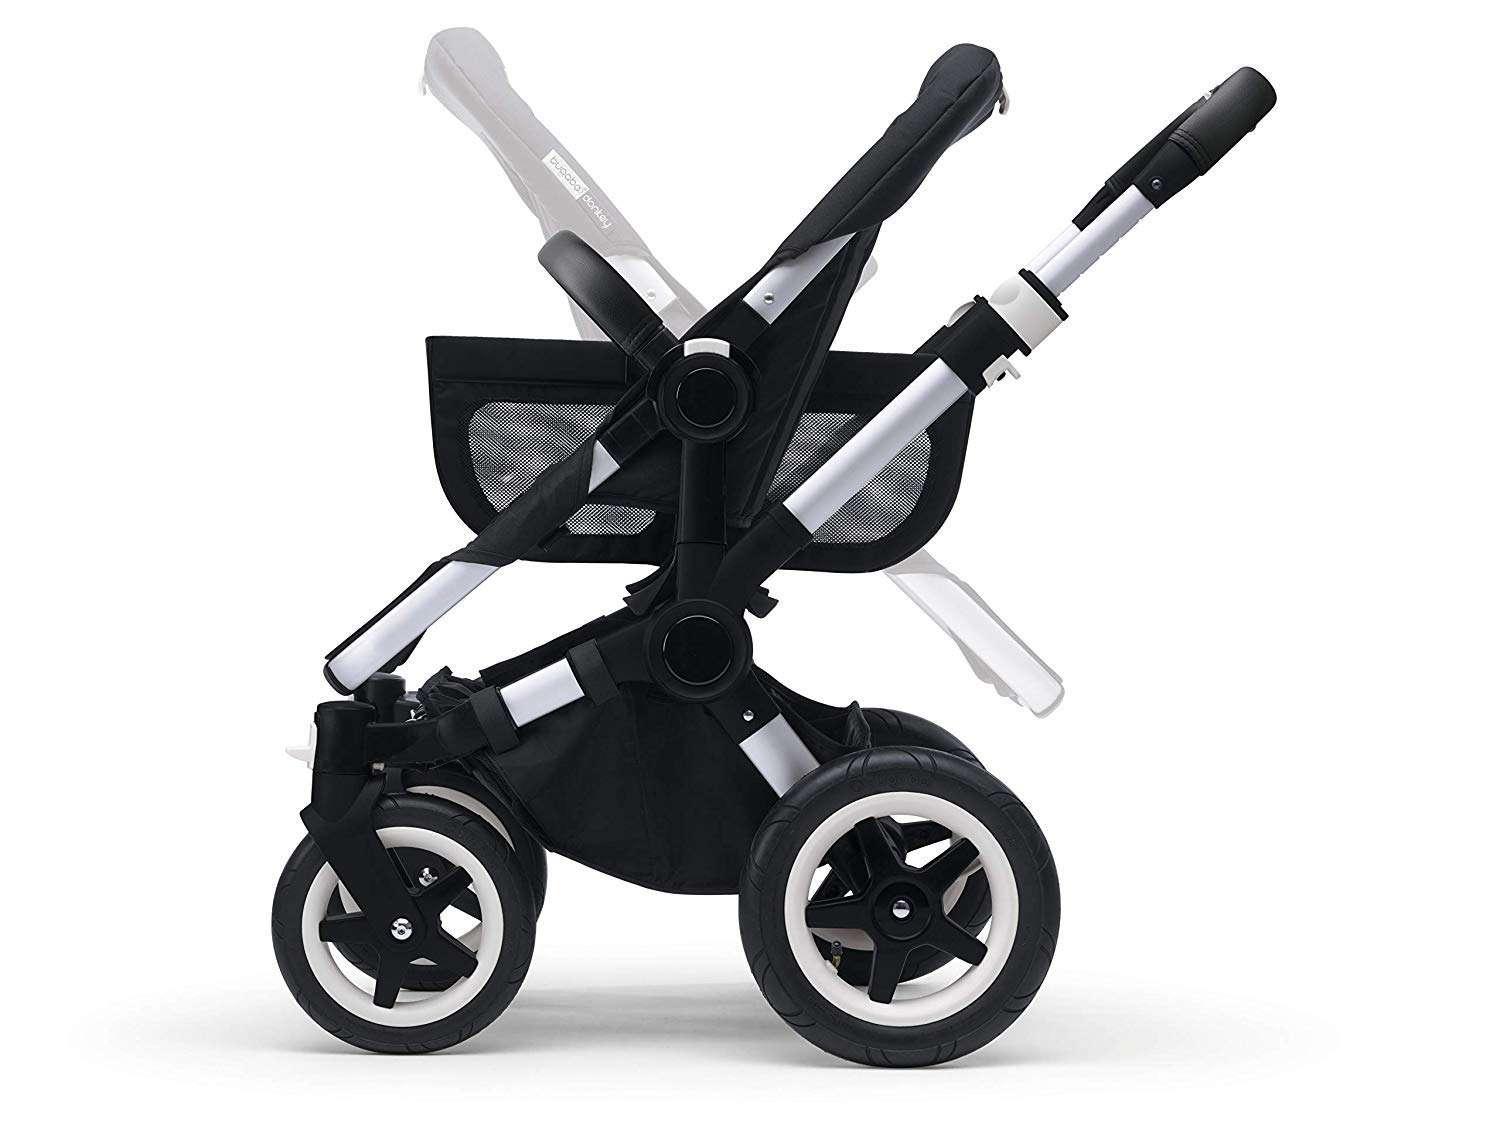 Bugaboo Donkey 2 Twin, 2 in 1 Double Pram and Double Pushchair for Twins, Steel Blue Bugaboo The name donkey says it all: it's the bugaboo pushchair with the most storage space. Compatible with the bugaboo donkey & donkey2 4